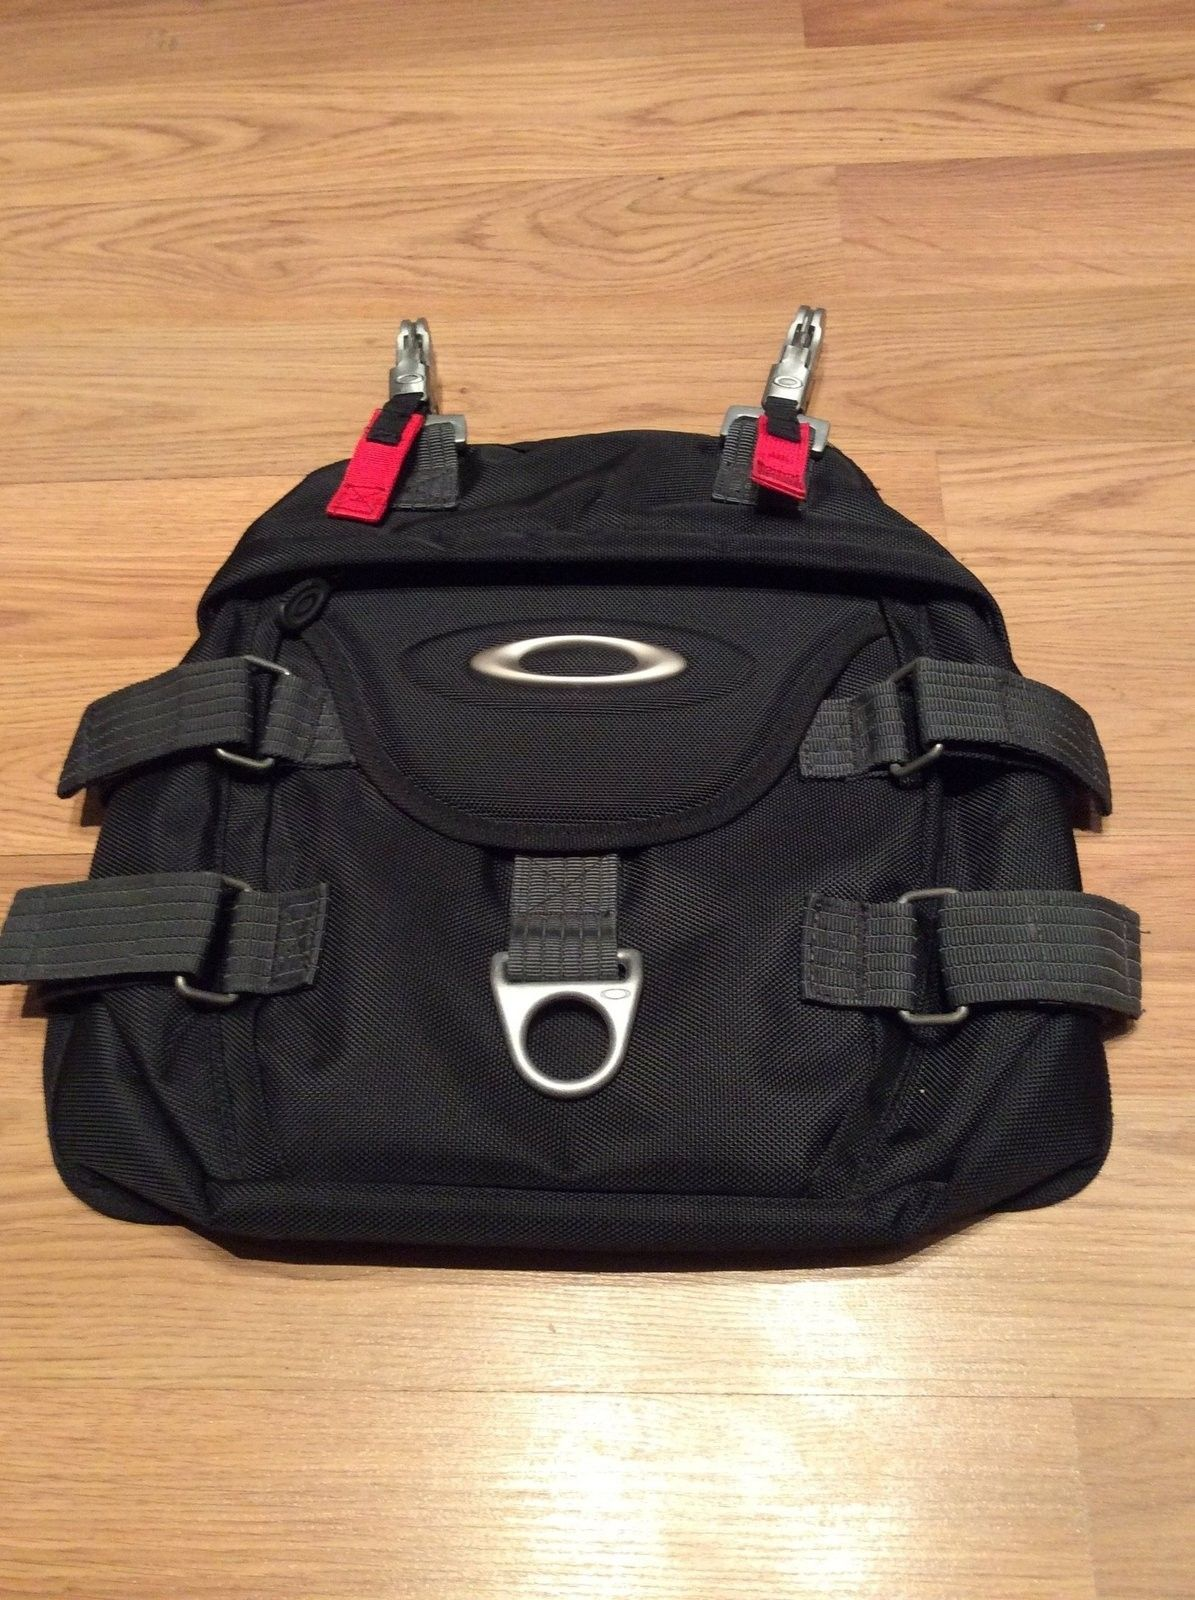 Rare AP luggage Attachment $80 shipped - image.jpg